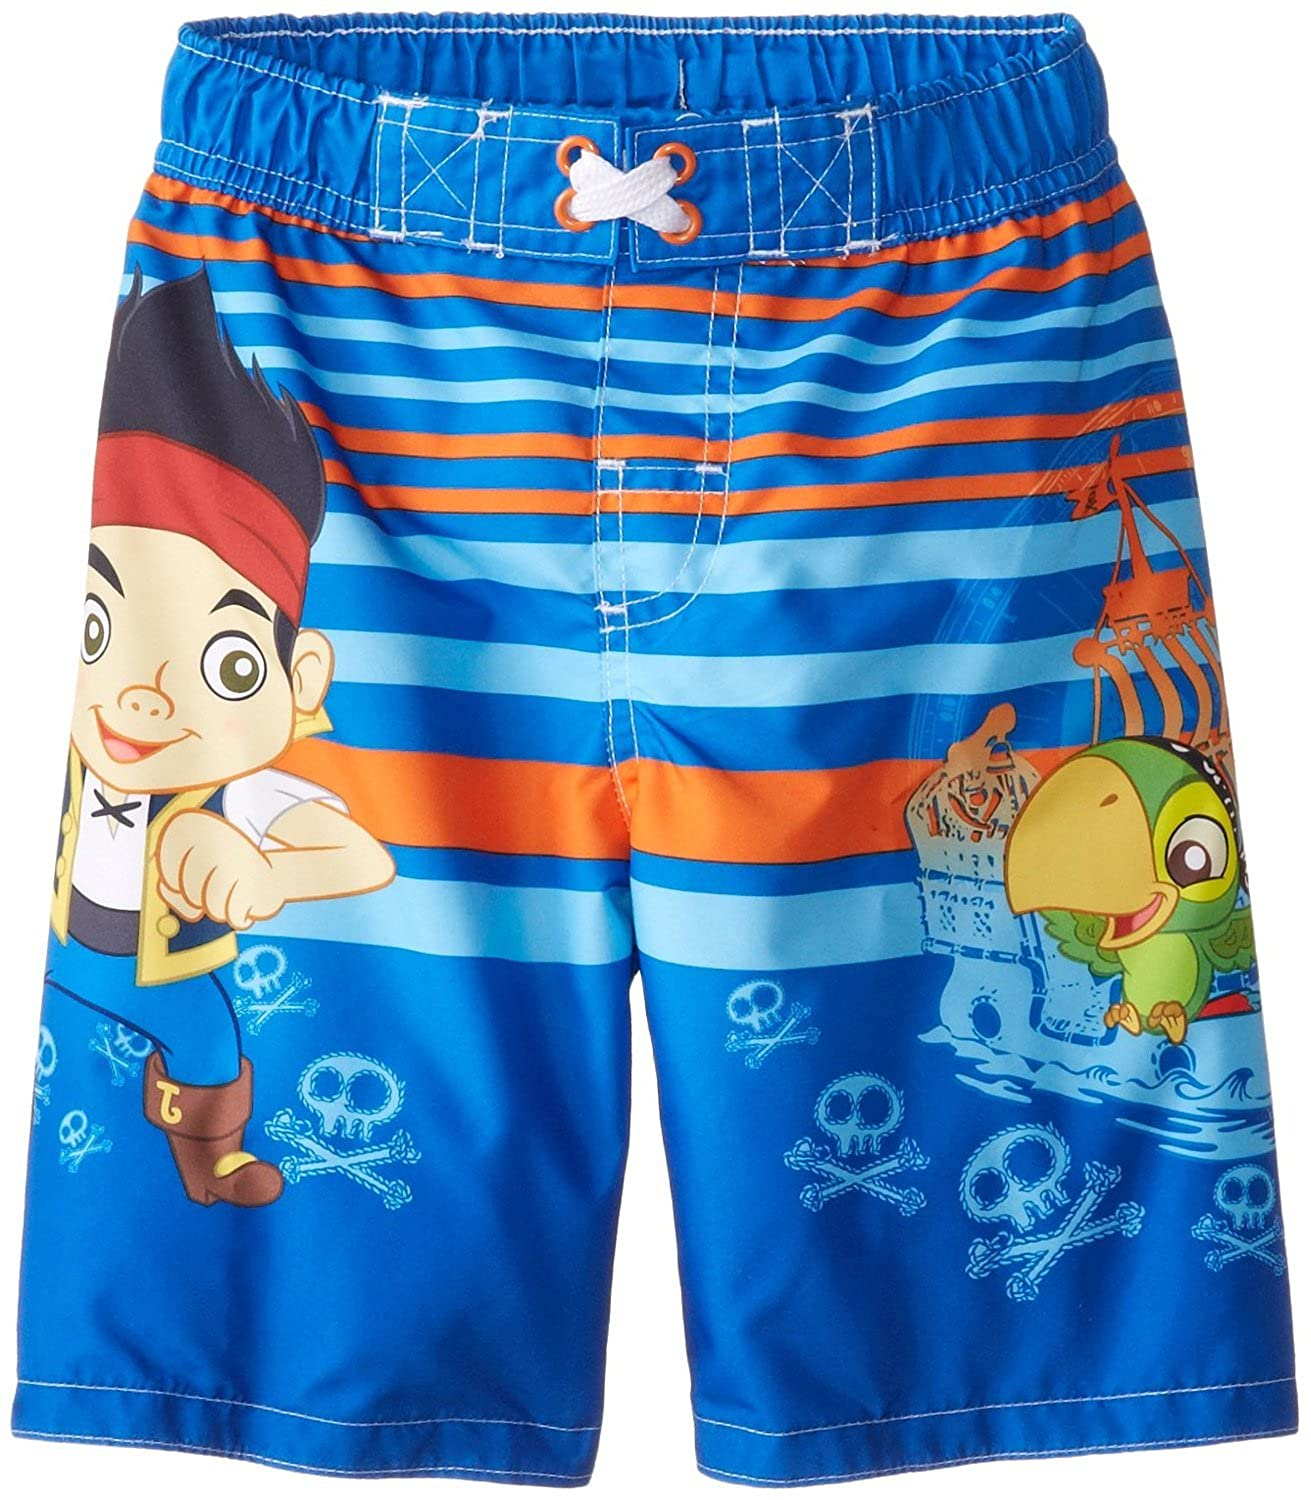 Disney Jake and The Never Land Pirates Little Boy Swim Trunks Size 5T